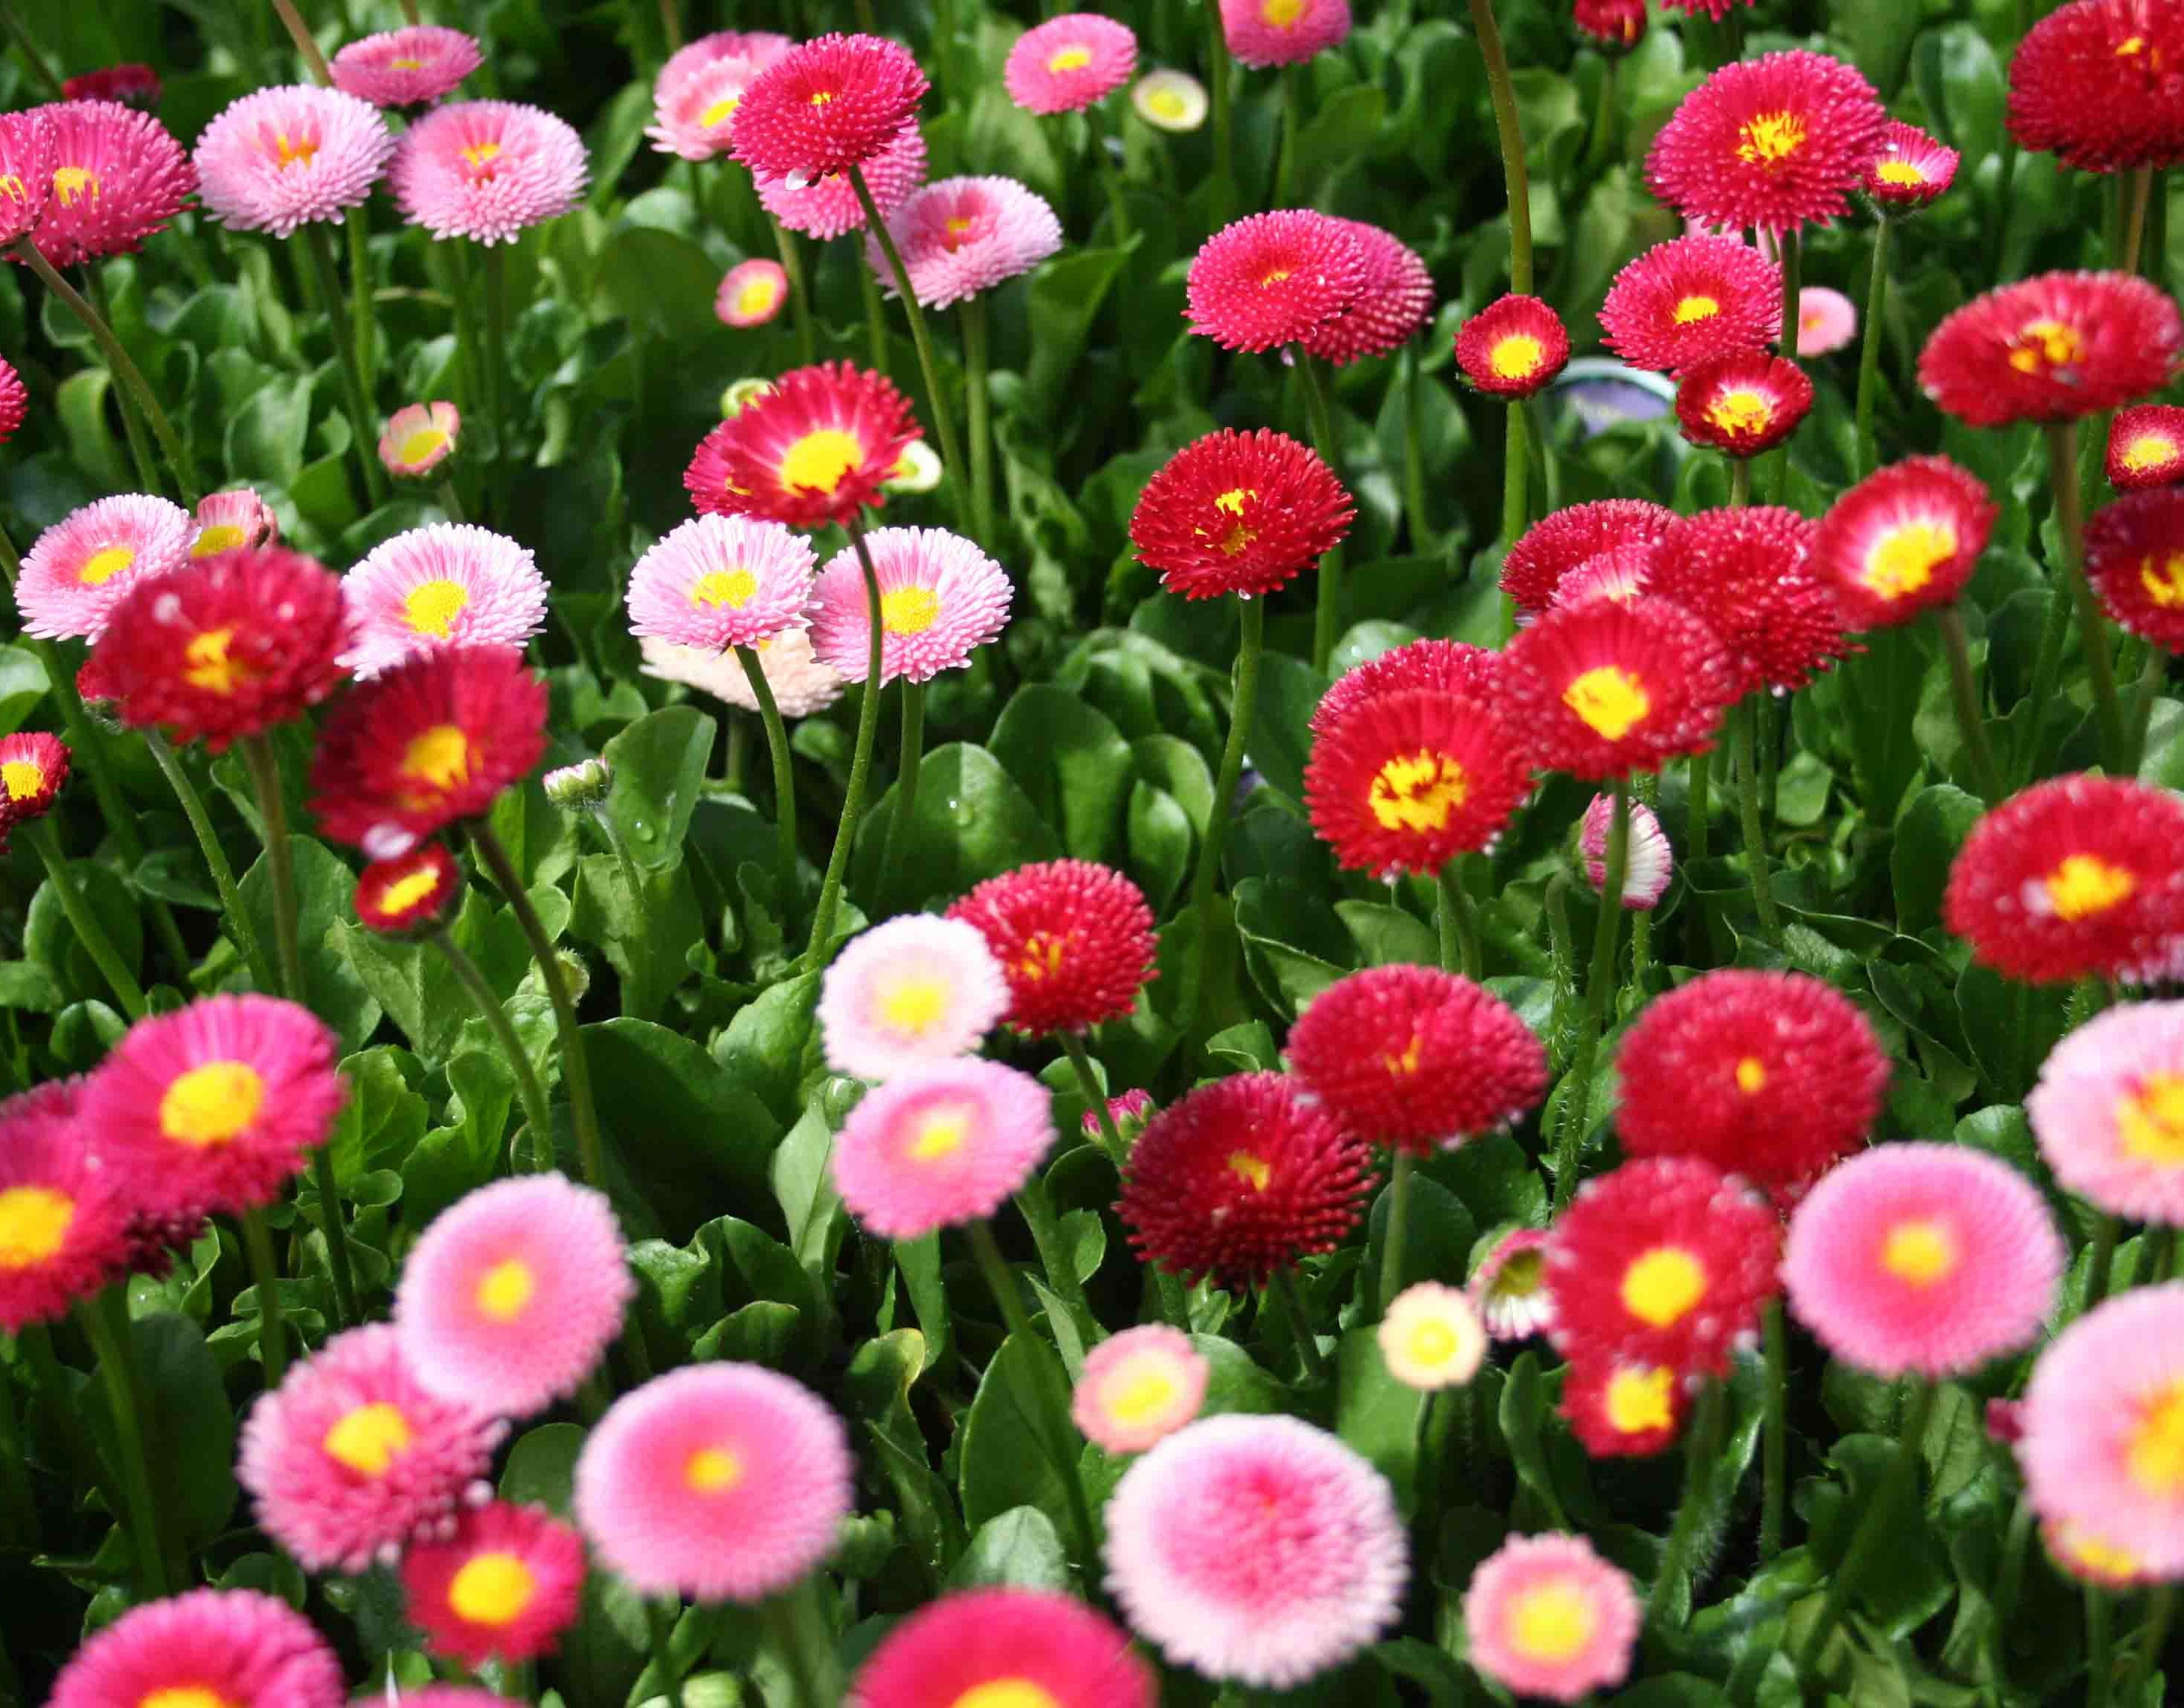 Buy premium quality daisy double mixed seeds at allthatgrows daisy double mixed seeds izmirmasajfo Image collections